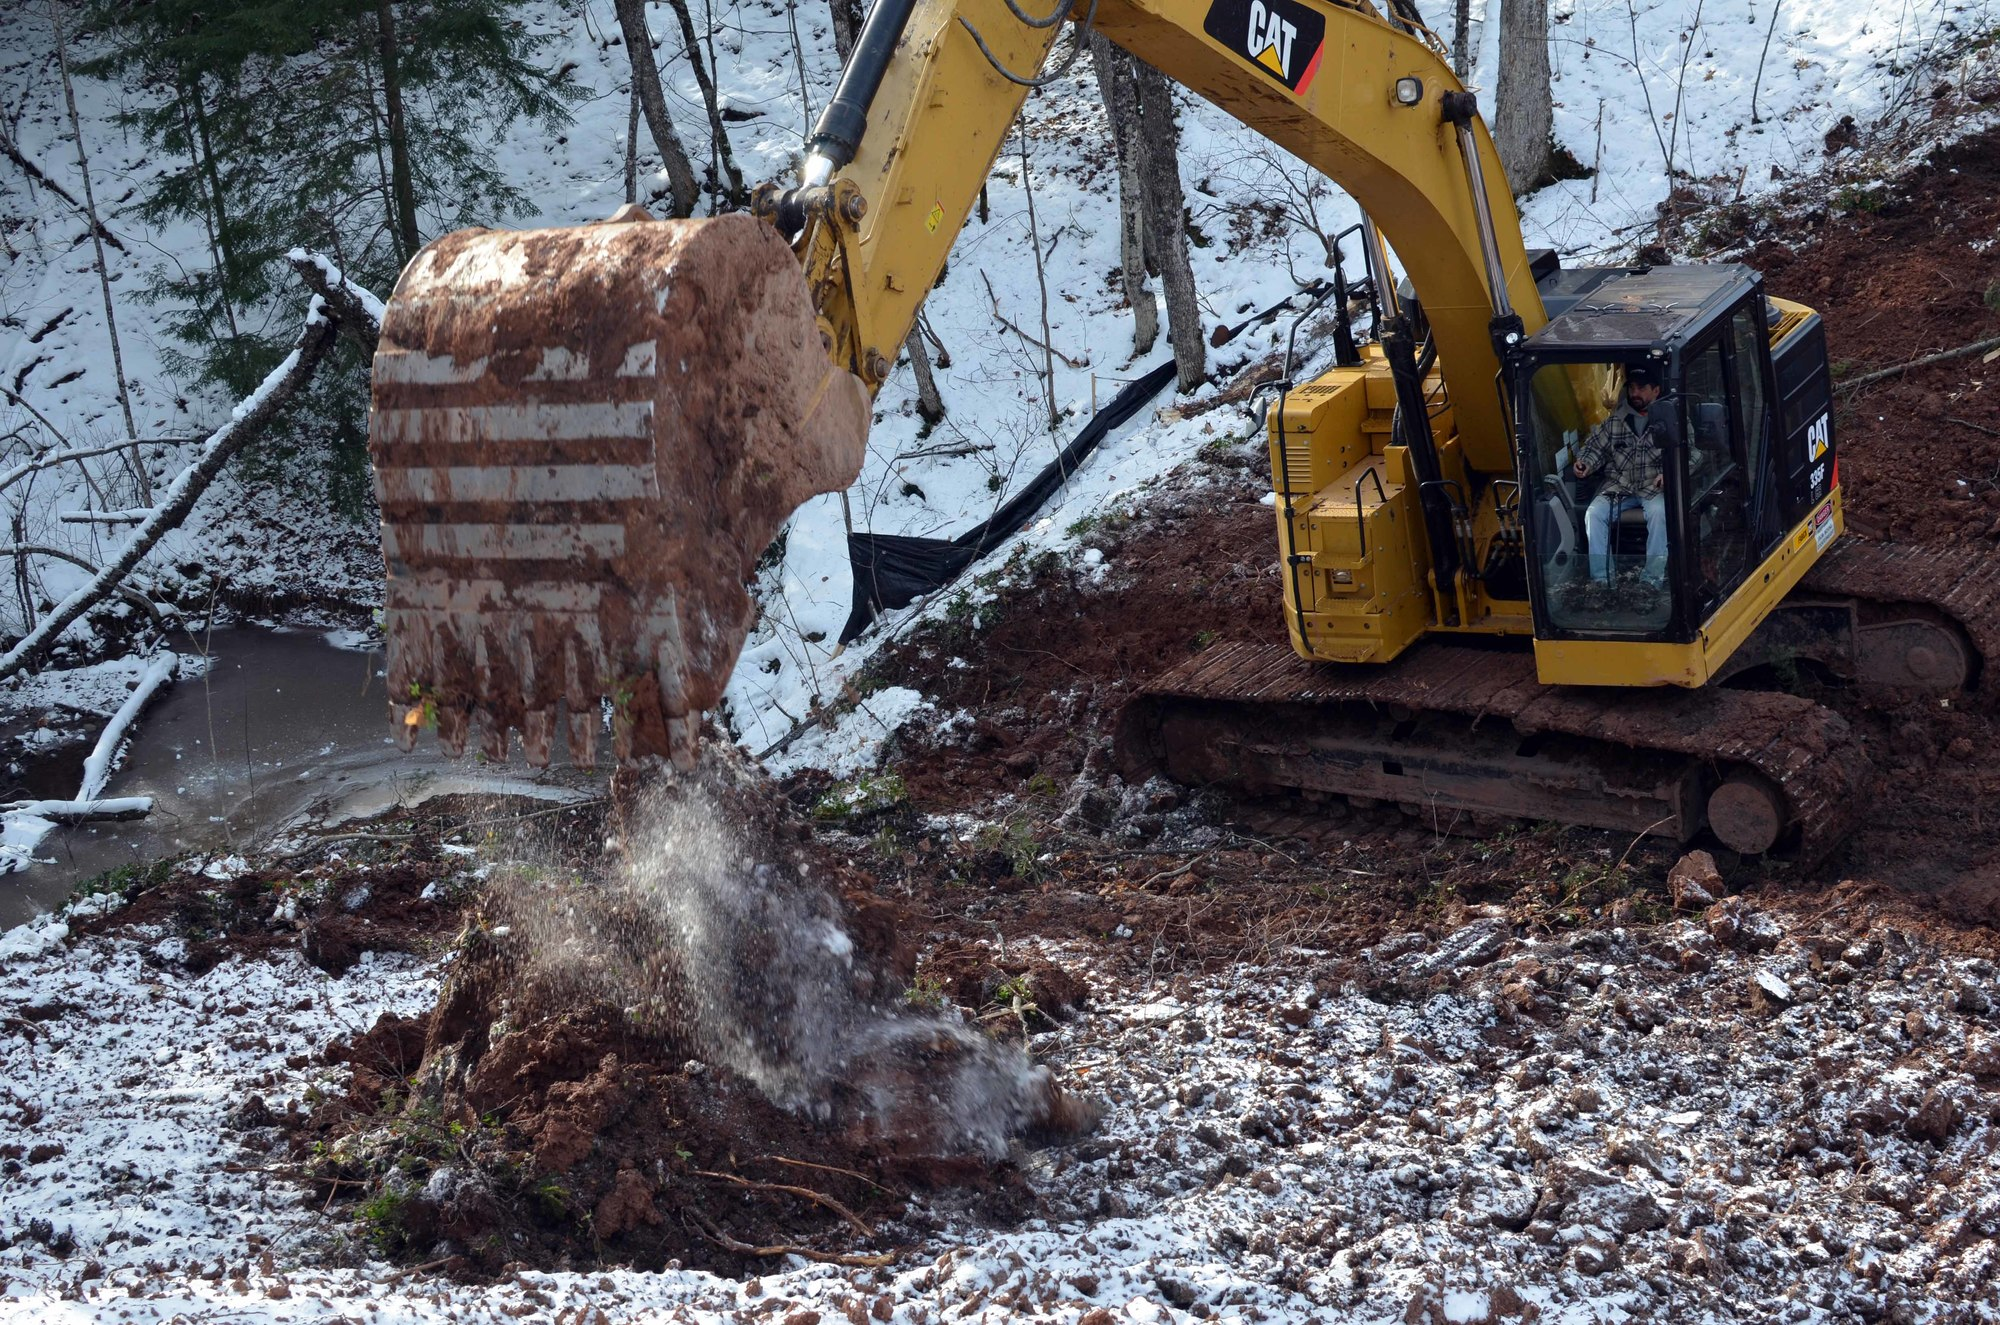 A backhoe operator removes dirt covering the old culvert. (Photo courtesy Don Helsel, MI-TRALE)